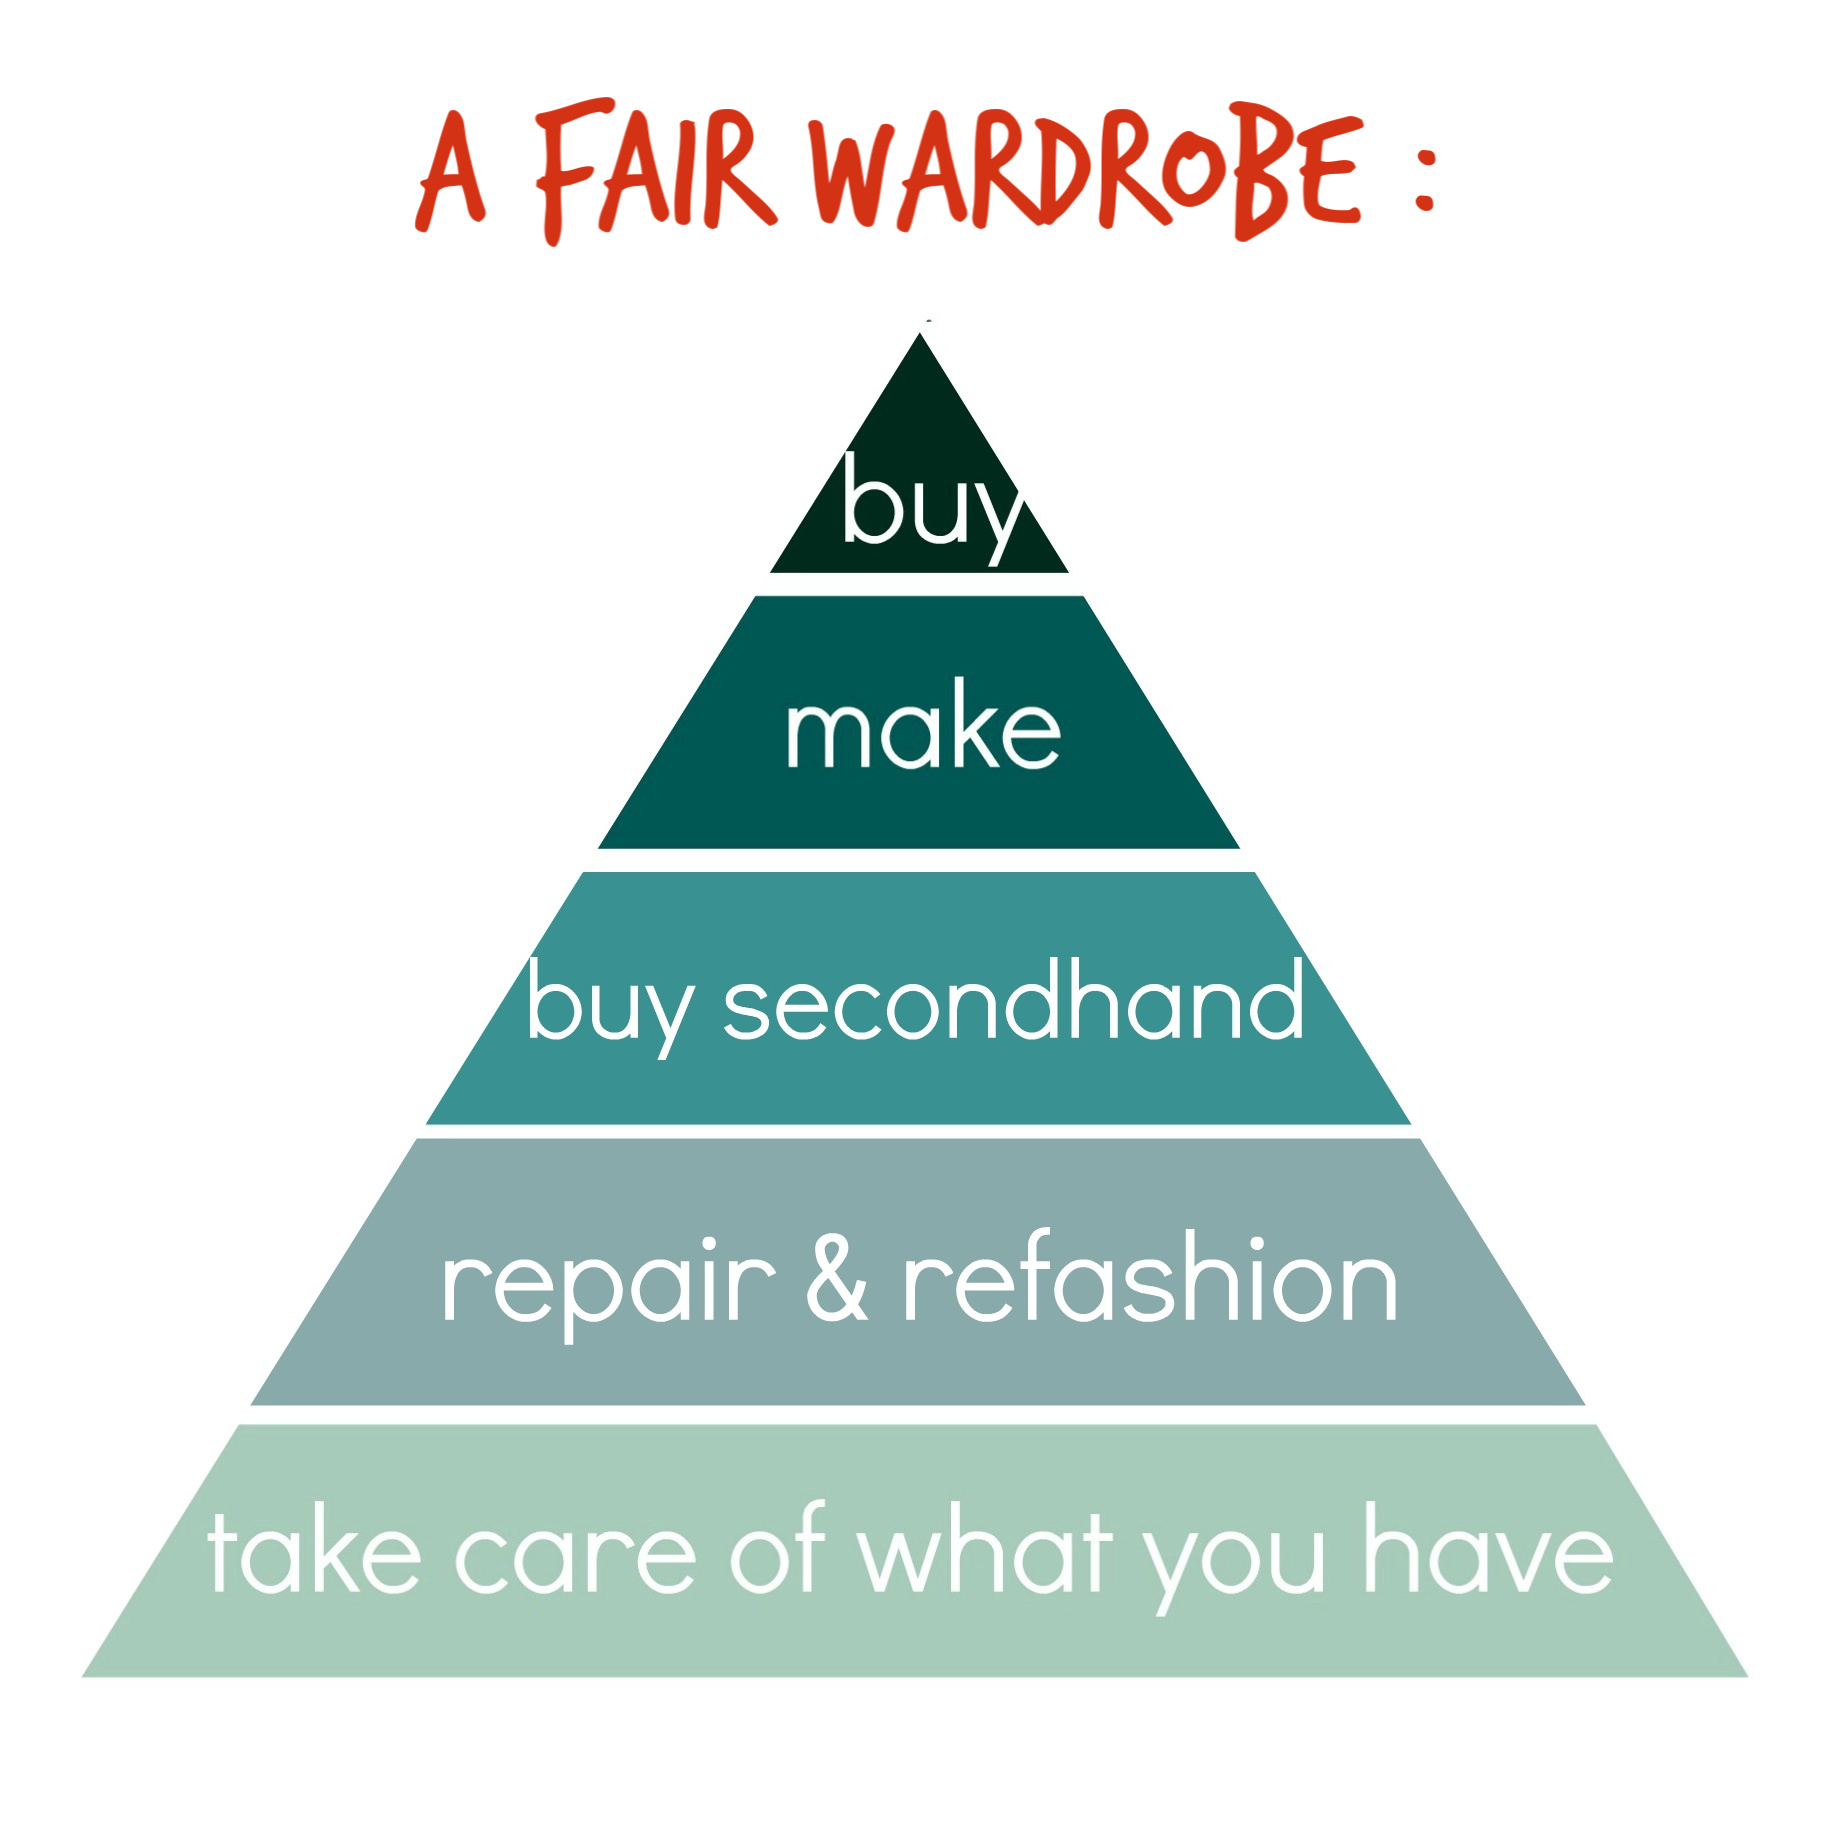 fair wardrobe piramide